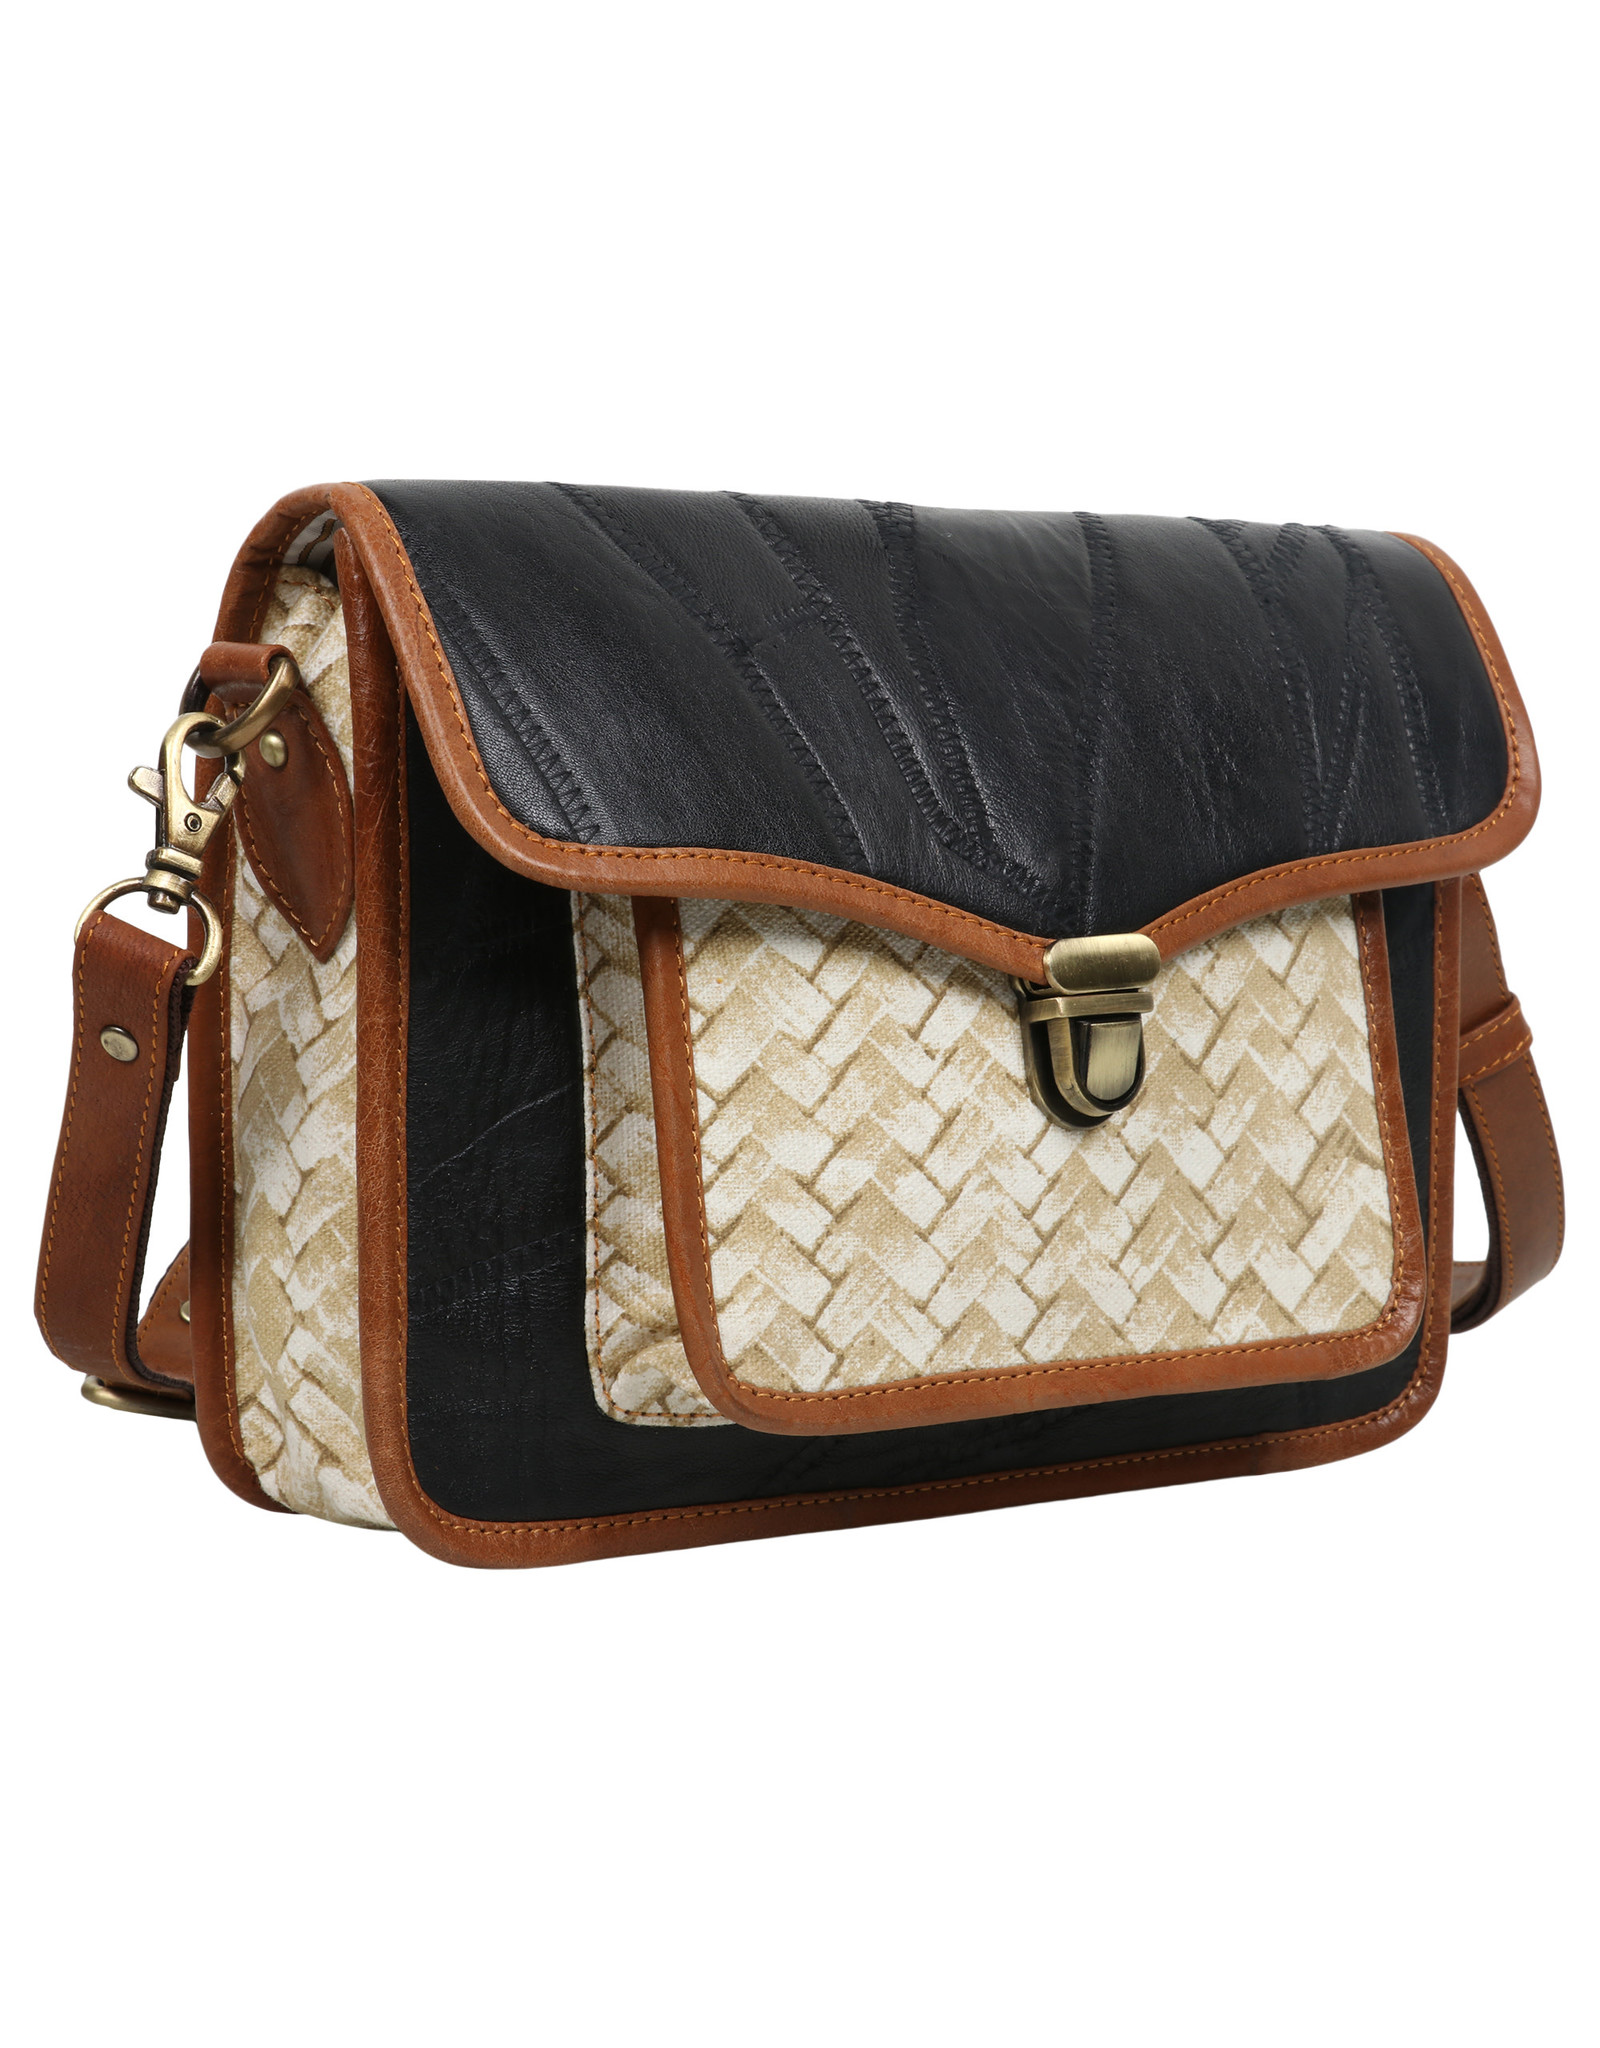 Vann & Co S2V-122 Medium Horizontal Crossbody Bag